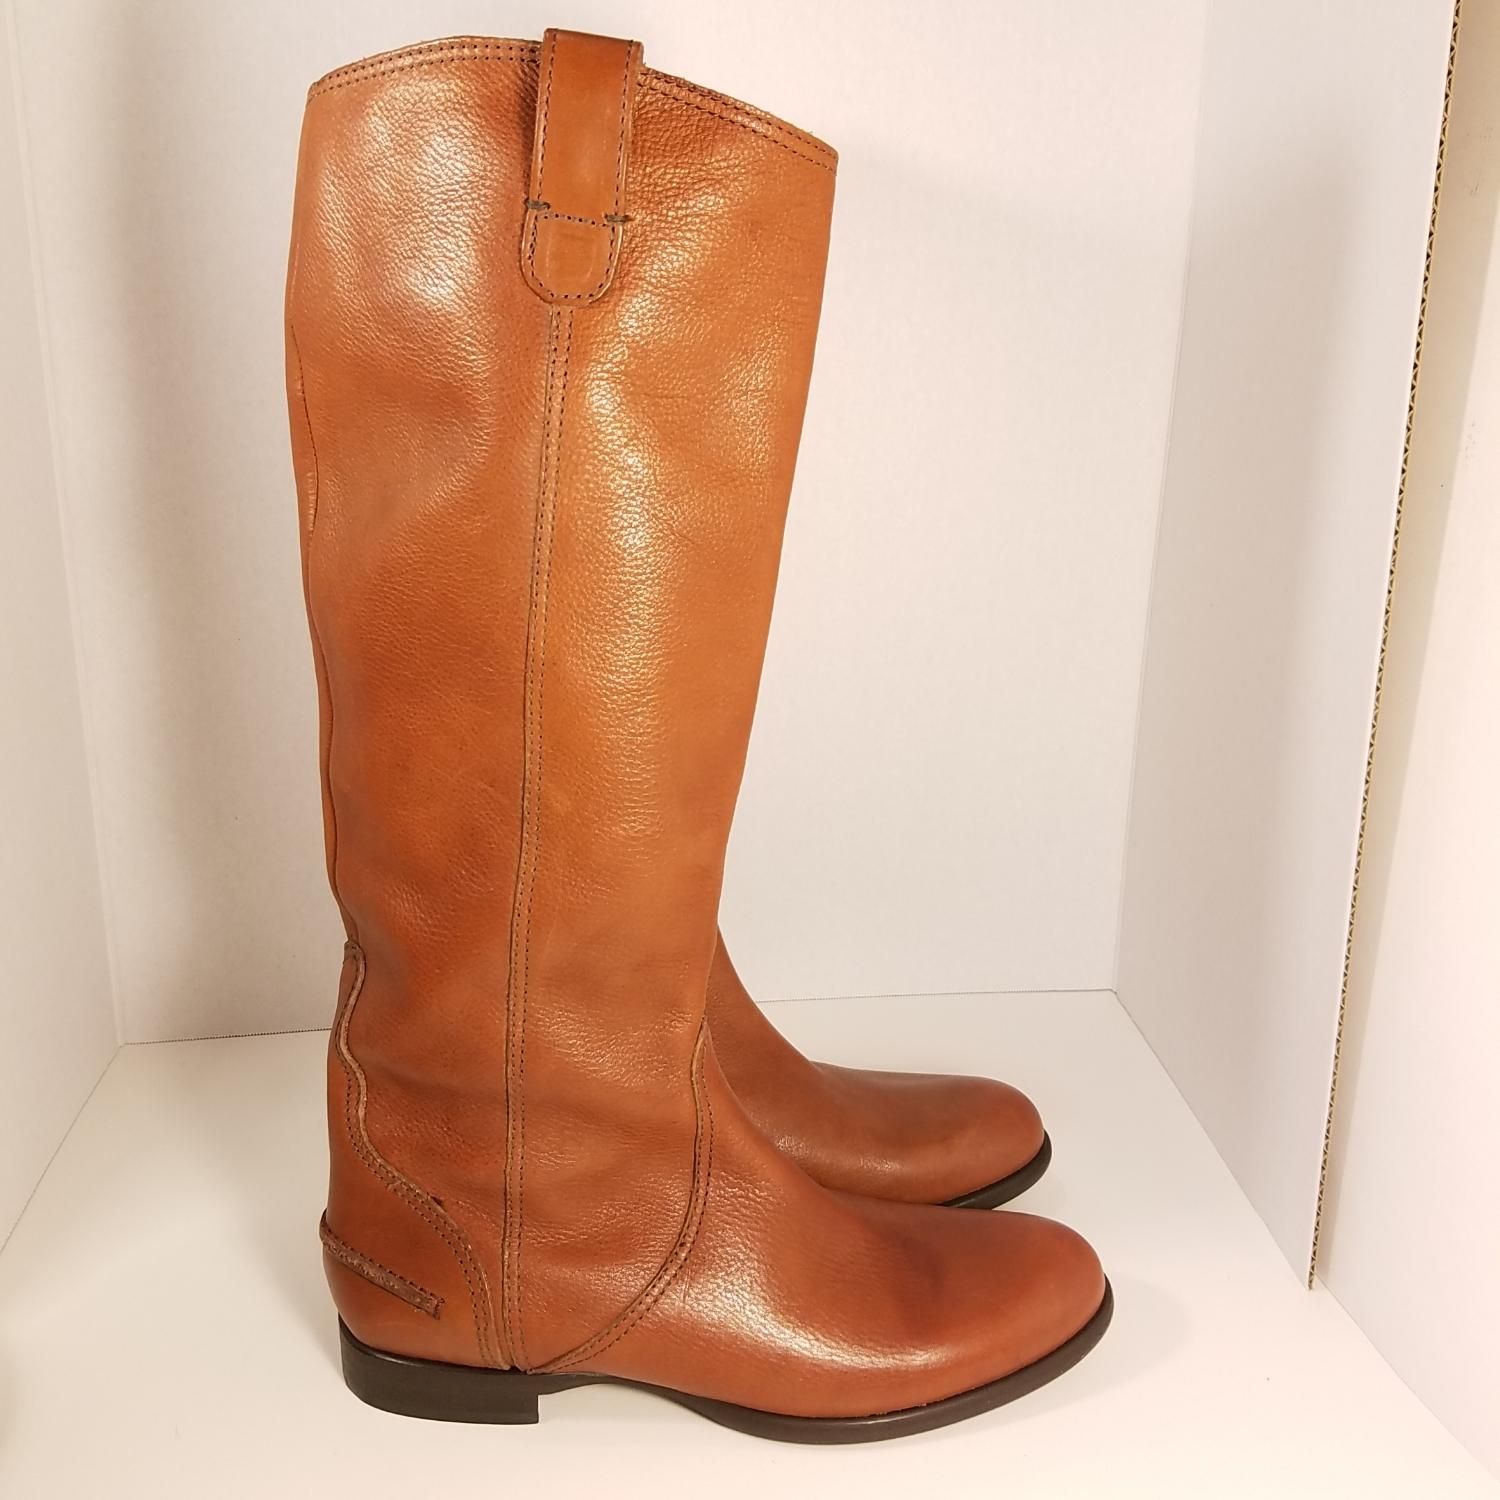 Madewell Riding Brown Nwot Archive Leather Riding Madewell Boots/Booties Size US 9 Regular (M, B) 50f7e2